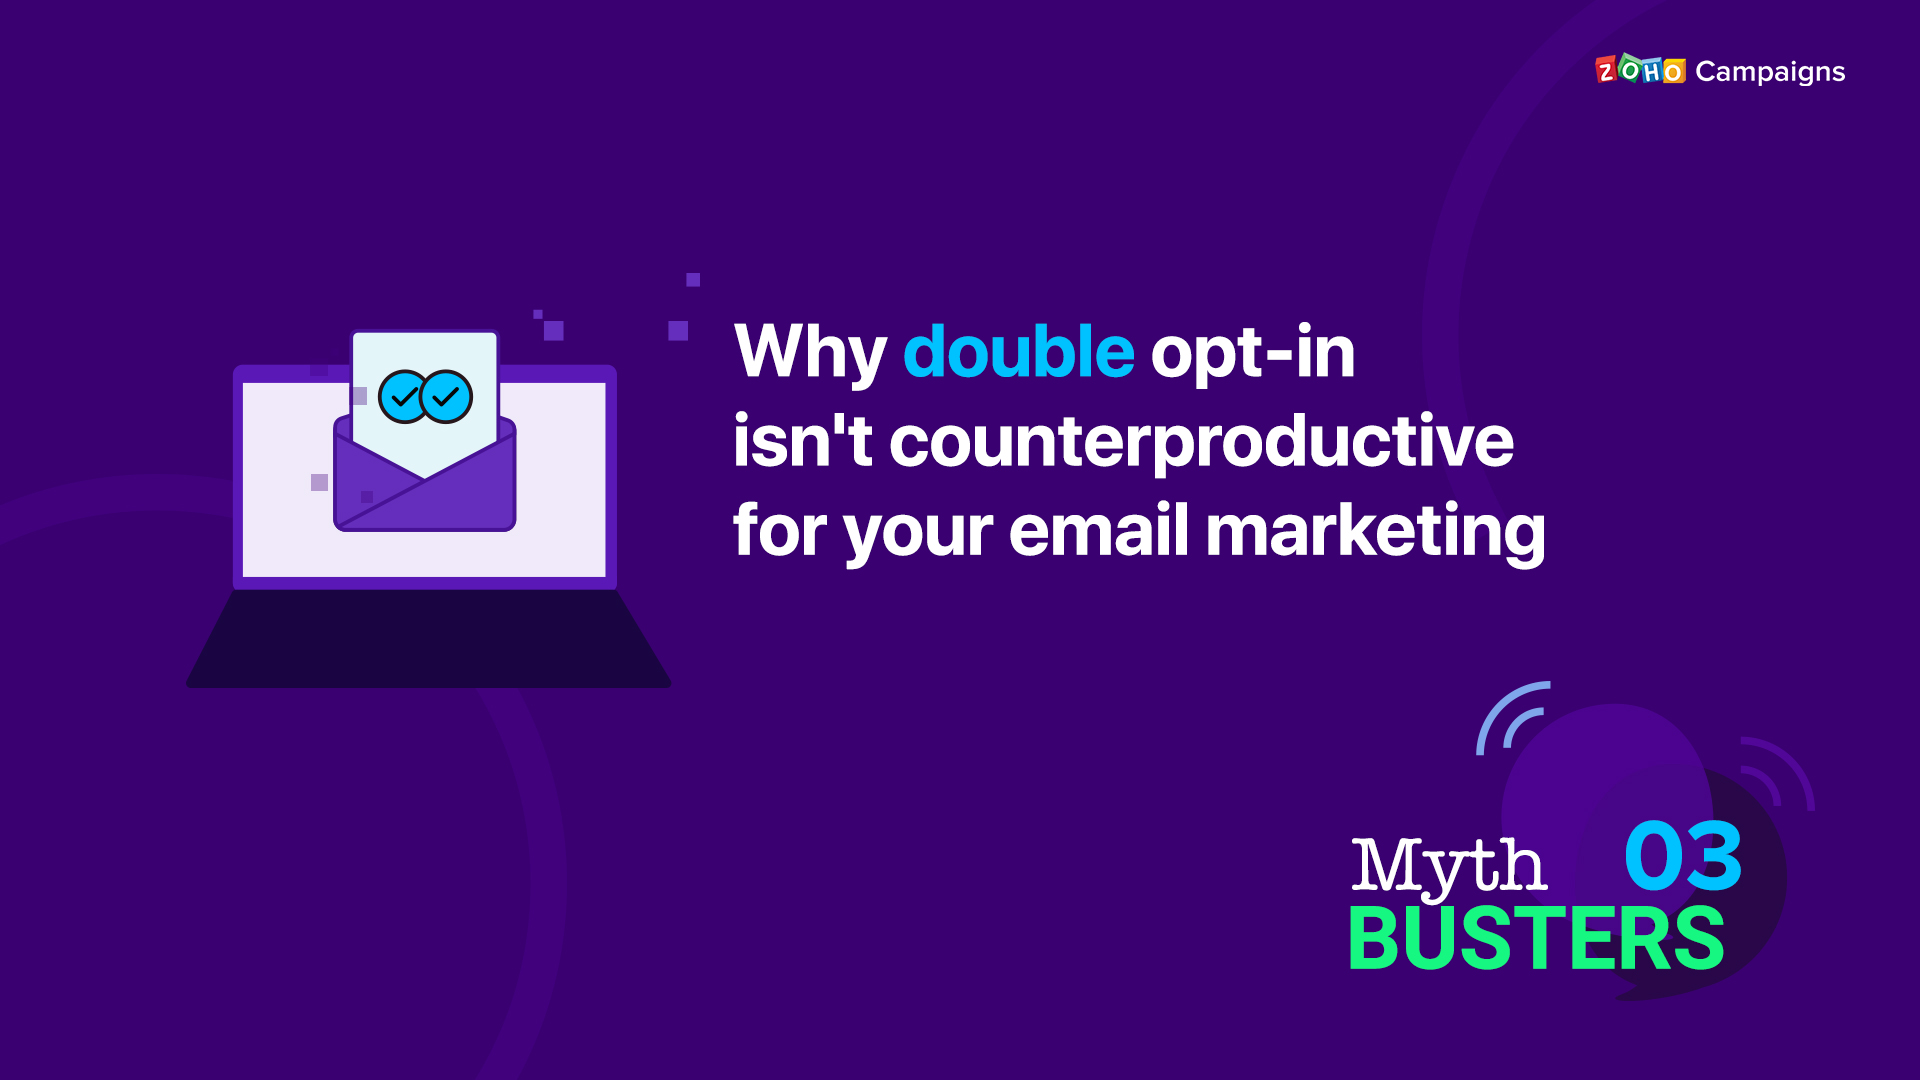 Why double opt-in isn't counterproductive for your email marketing